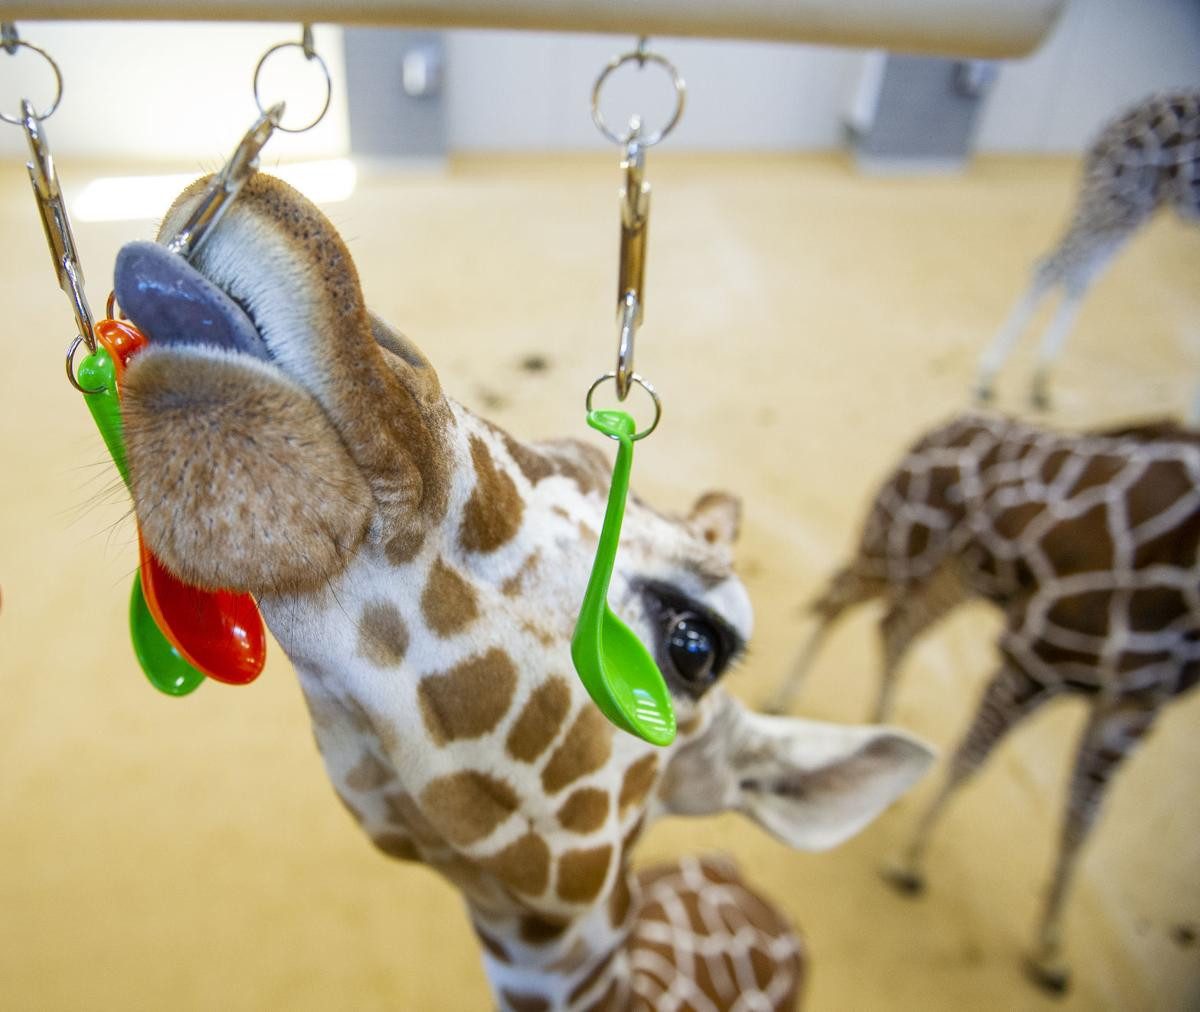 Phoebe, one of the new giraffes at the Lincoln Children's Zoo, plays with the hanging spoons on an enrichment item created by Nebraska Engineering students in the Theme Park Design Group. (Lincoln Journal Star photo)